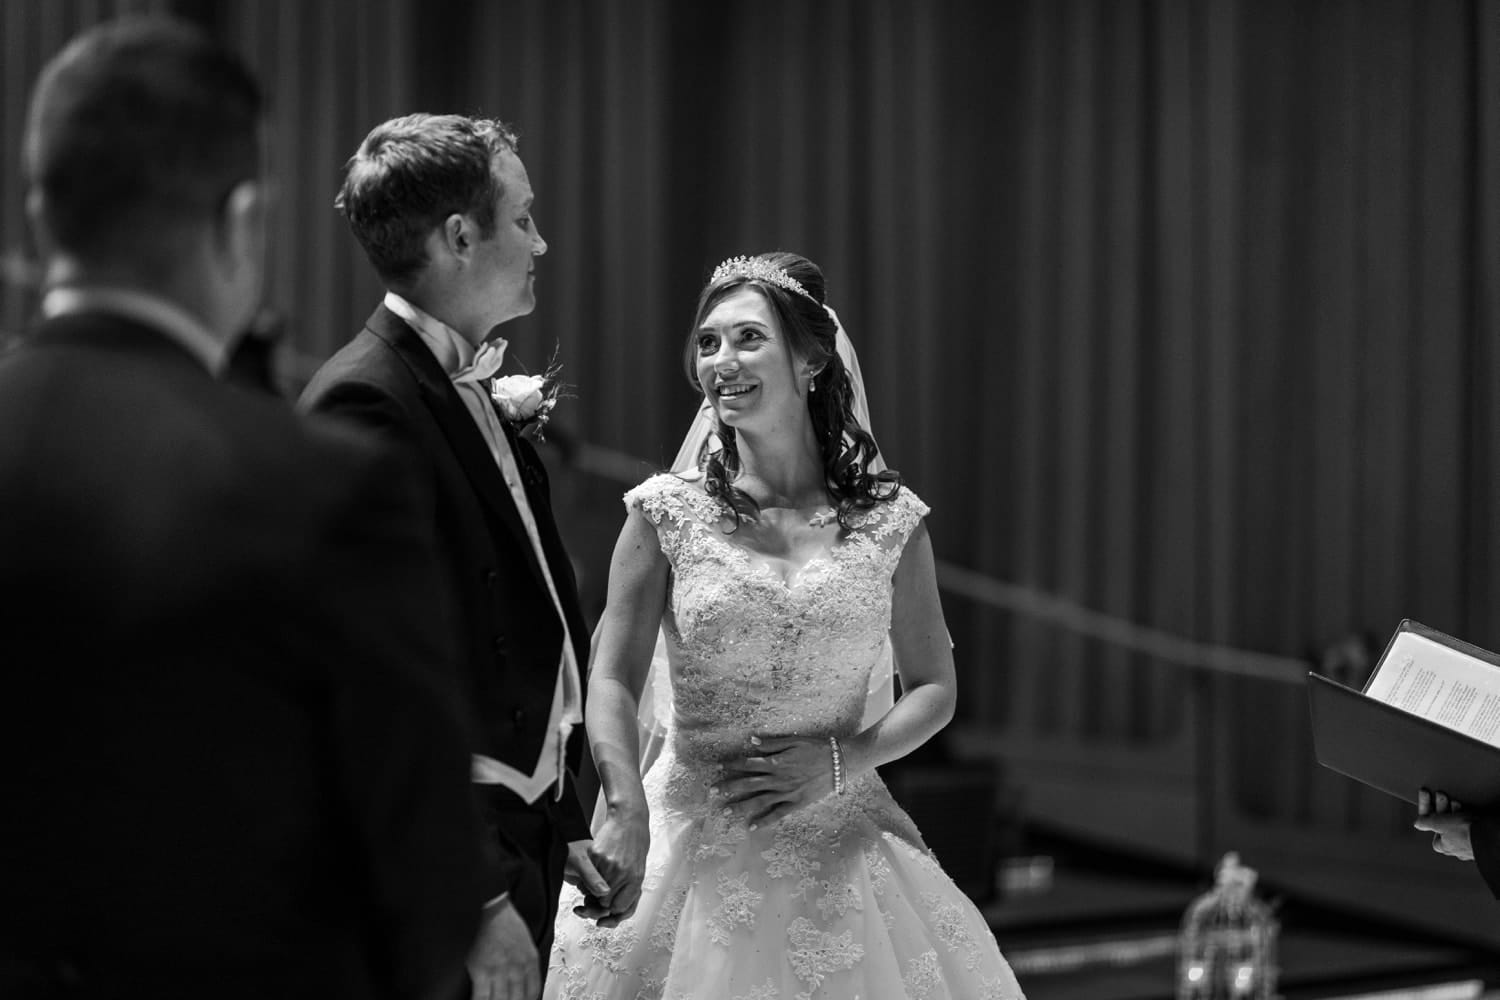 Concert Hall wedding ceremony at The Royal Welsh College of Music and Drama